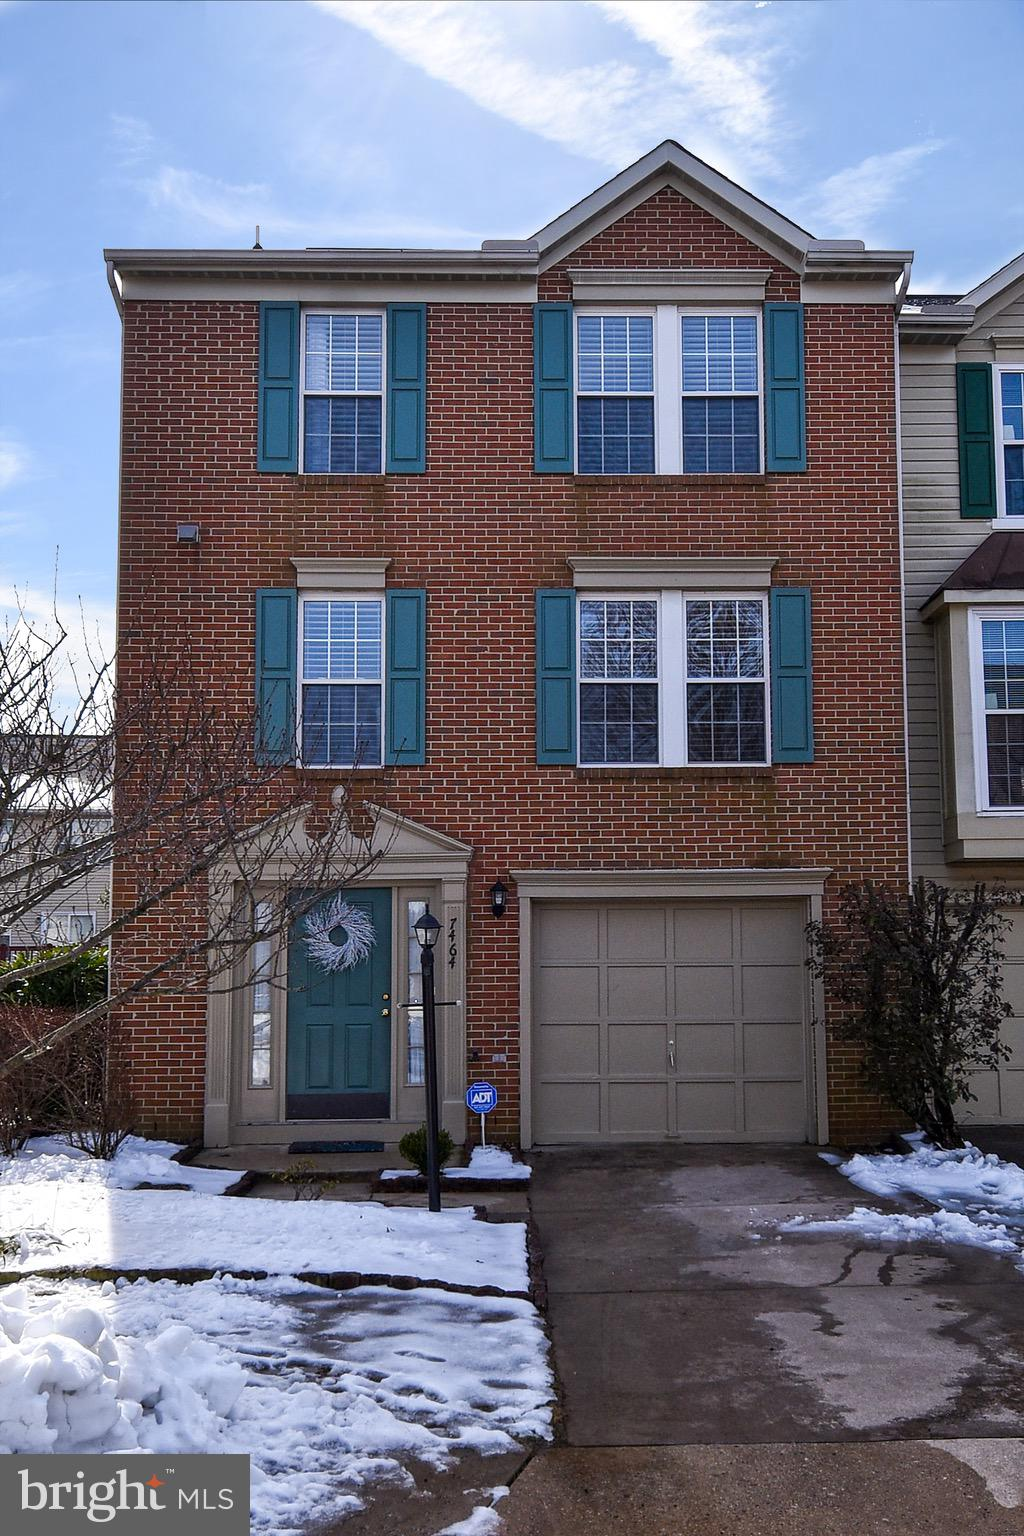 Welcome home to this beautiful 3BR, 2.5BA brick front, end unit townhouse in sought after Kingstowne~large eat in country kitchen w/walkout to sundeck ~perfect for grilling and dining out side. Family Room with plenty of room to come home and relax. New plantation blinds. Large MBR suite with walk-in closet and private full bath ~ Generous LL rec room with gas fireplace (for these cold, snowy nights)  walk out to tastefully landscaped fenced in back yard back with paved patio. Enjoy access to the endless Kingstowne amenities. Minutes to shops and 495 ~ 1 mile from blue line metro. Better hurry! Armoire in bedroom and sideboard in kitchen convey.